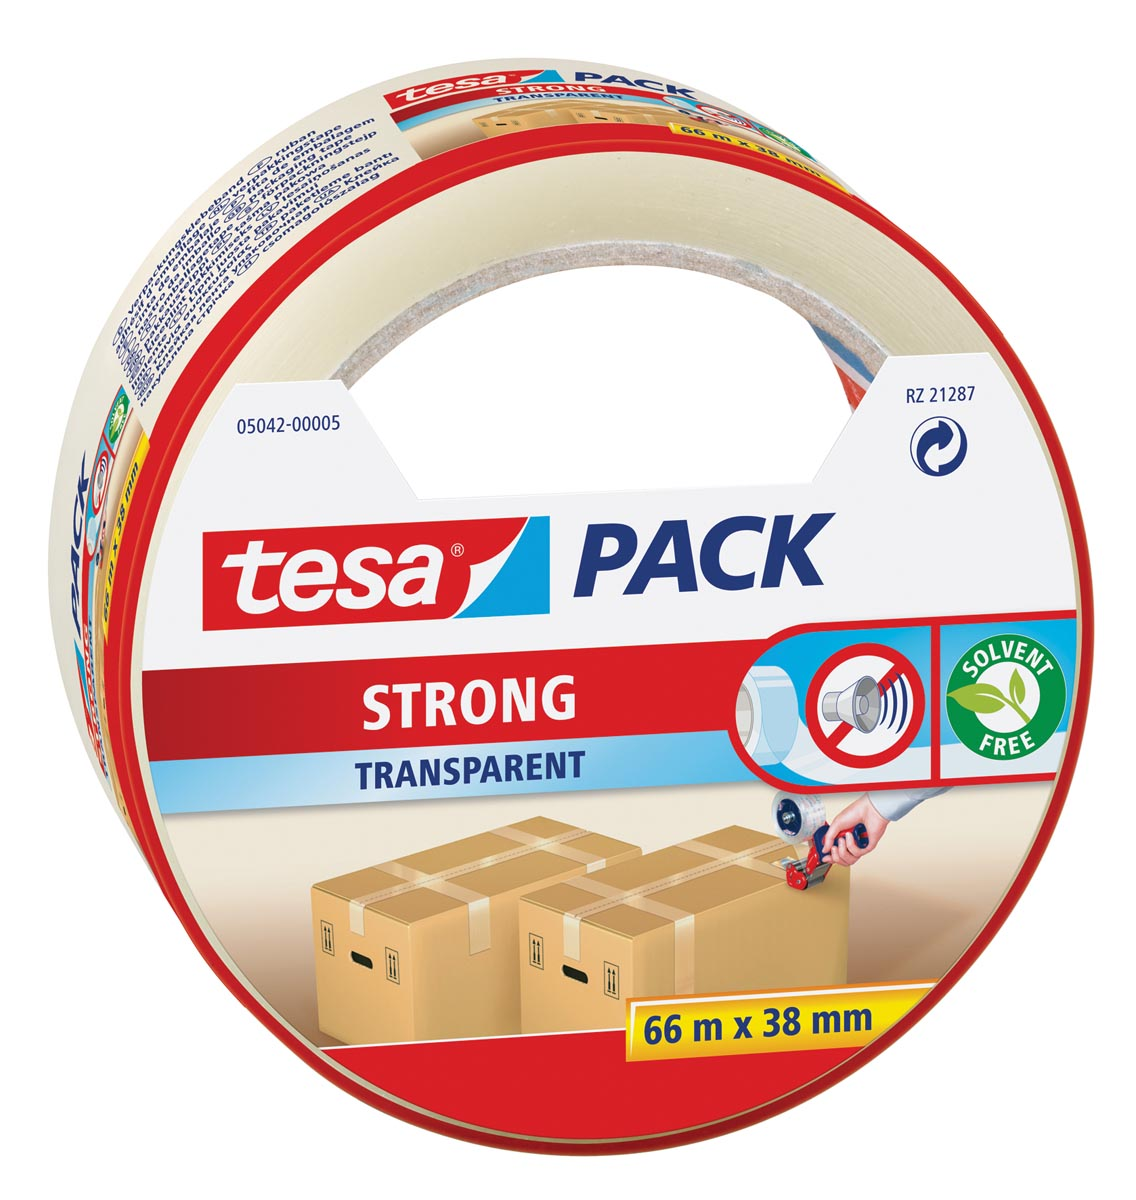 Tesa verpakkingsplakband Strong, ft 38 mm x 66 m, PP, transparant